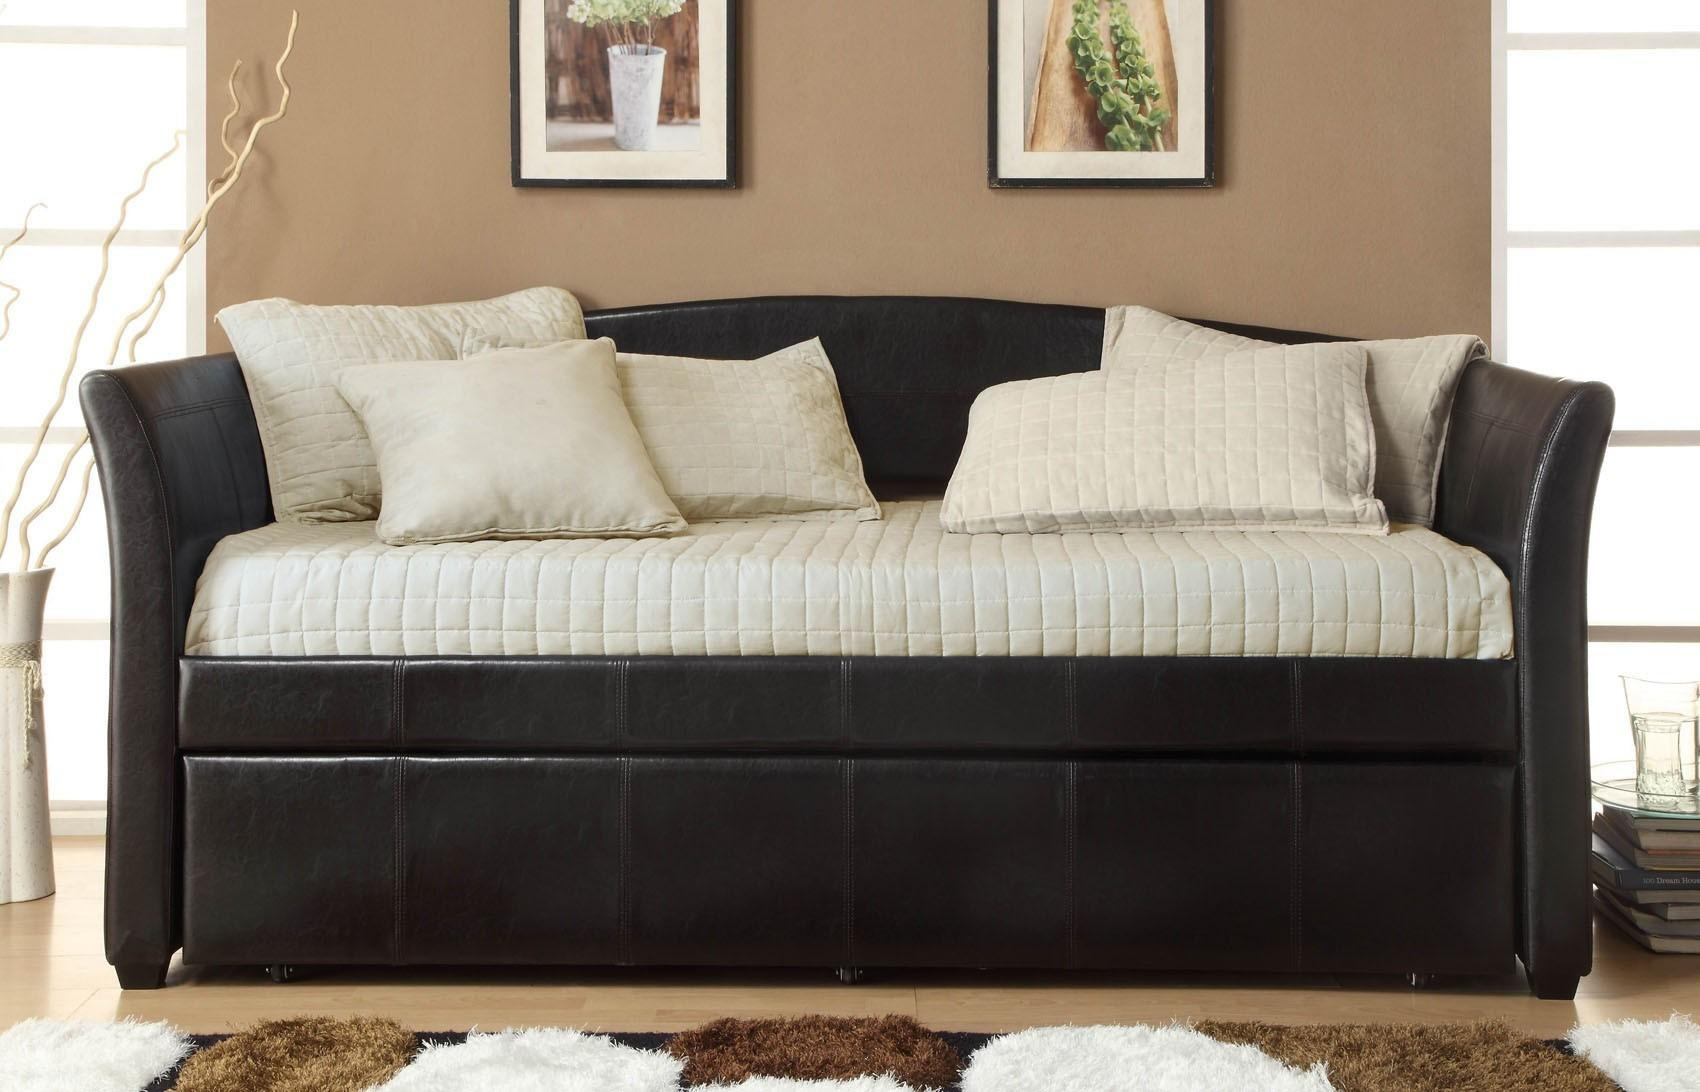 Bedroom: Day Bed Sofa Bed Or Daybed Picture With Daybeds With Throughout Sofa Day Beds (View 9 of 20)